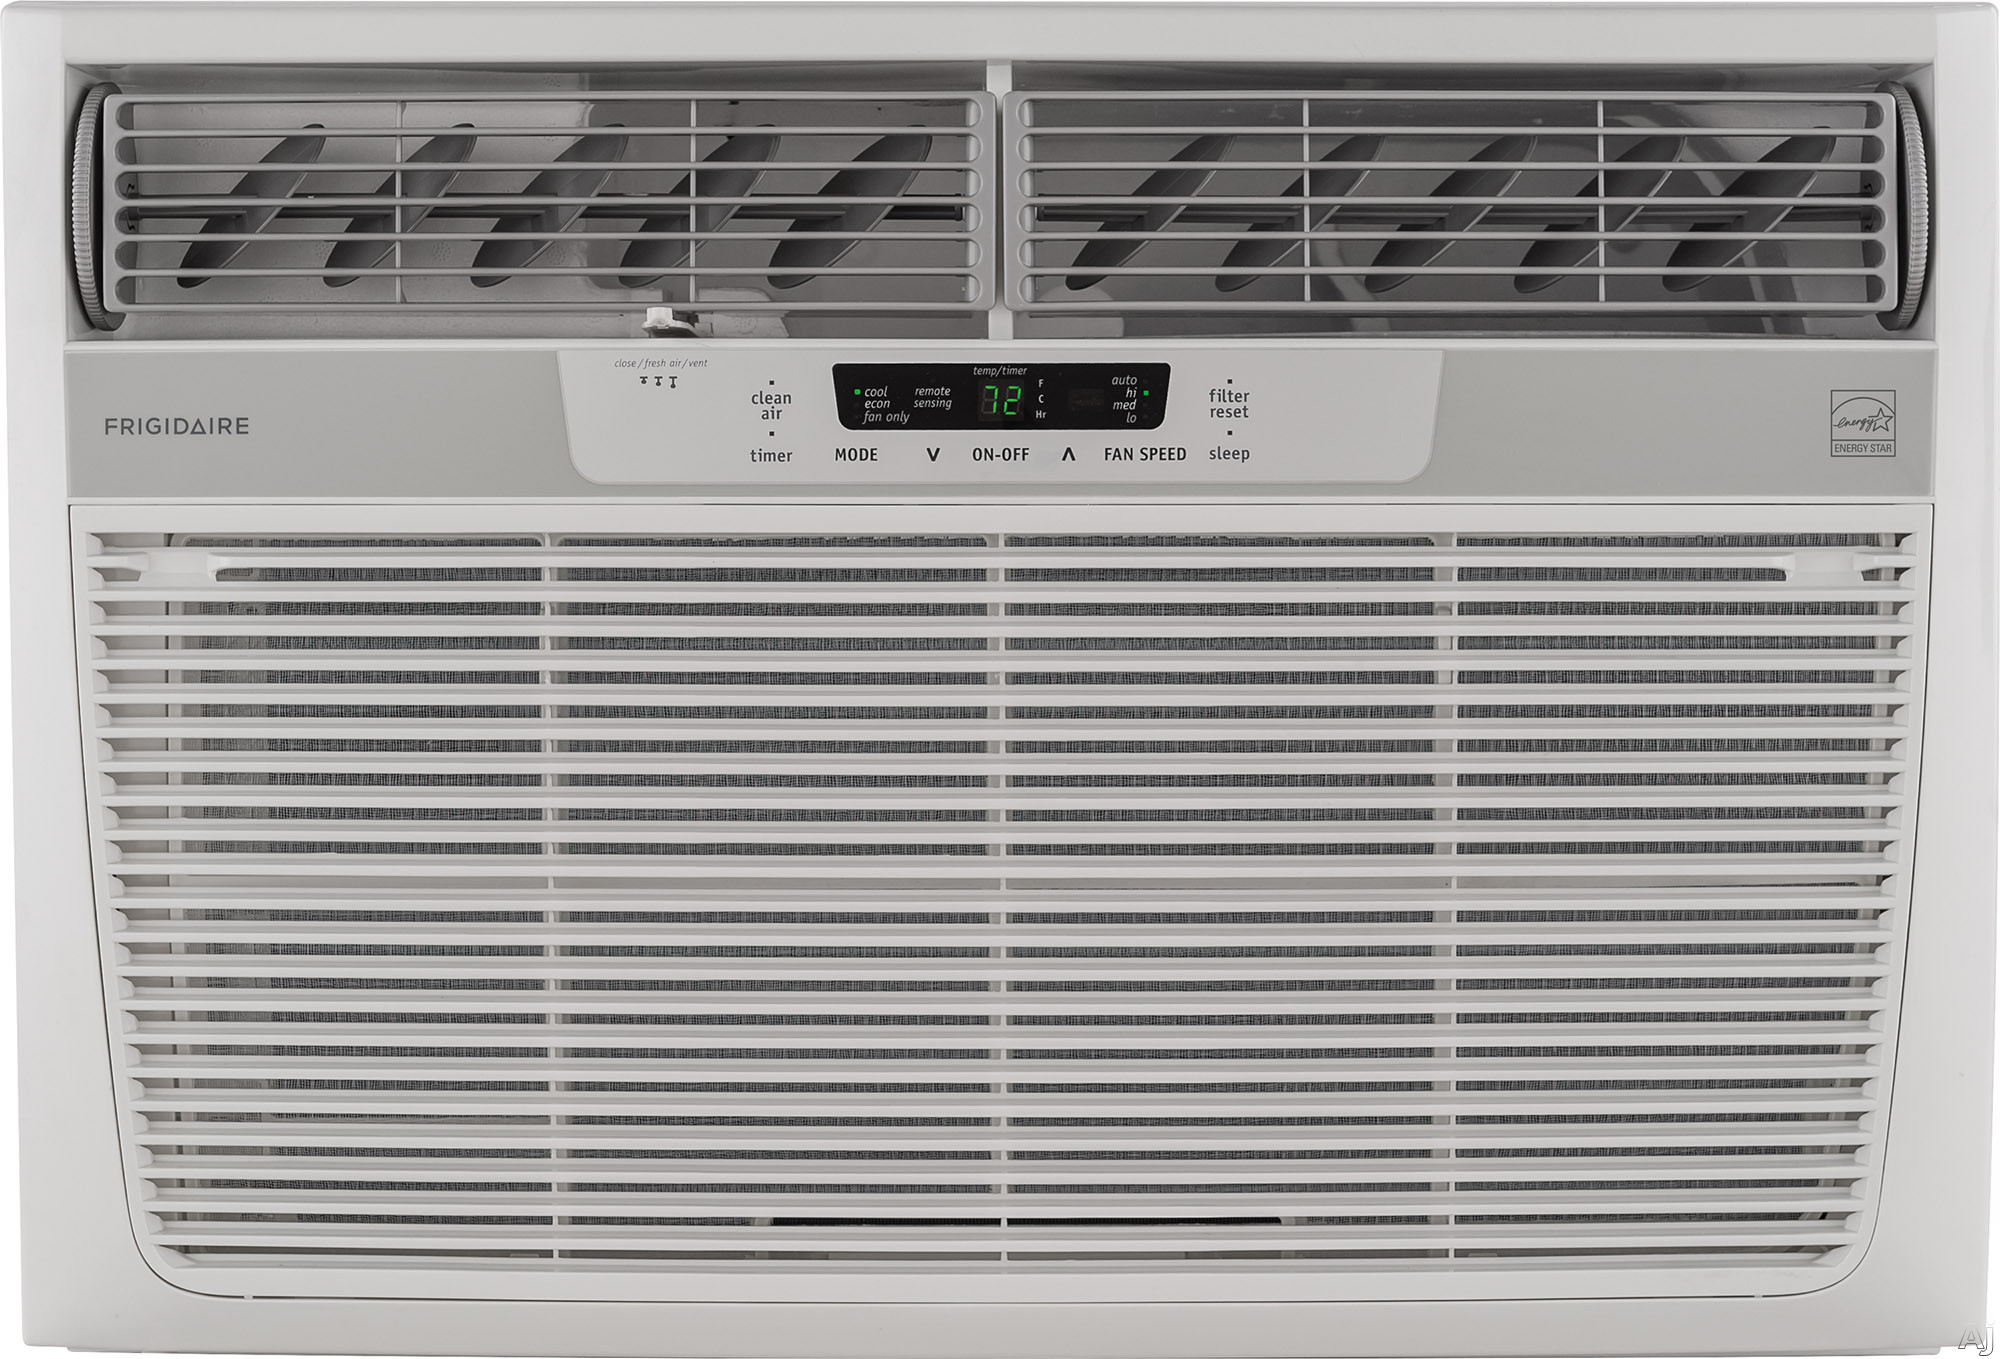 Frigidaire FFRE2533S2 25 000 BTU Window Thru The Wall Room Air Conditioner with 523 CFM 3 Fan Speeds Effortless Remote Temperature Control 24 Hour Timer Energy Saver Mode Effortless Clean Filter Clean